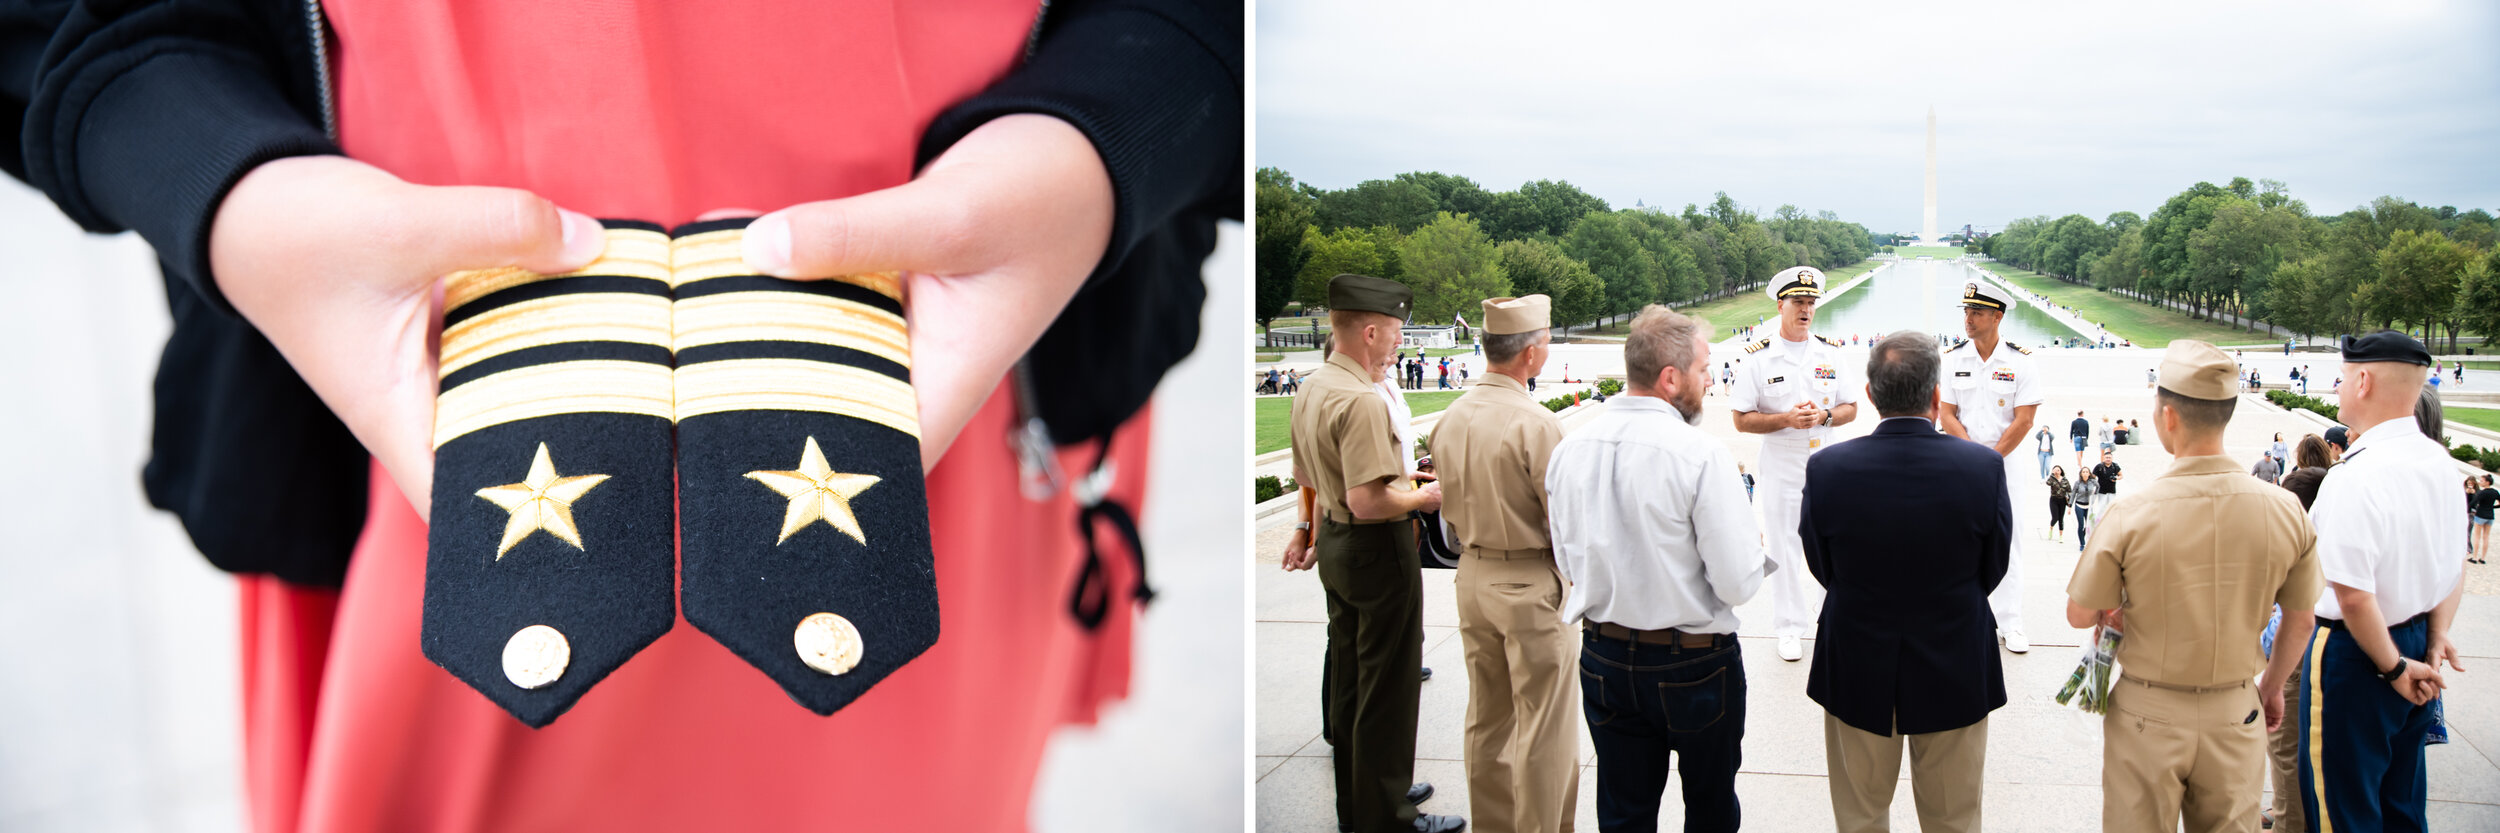 Military promotion at the Lincoln Memorial in Washington DC